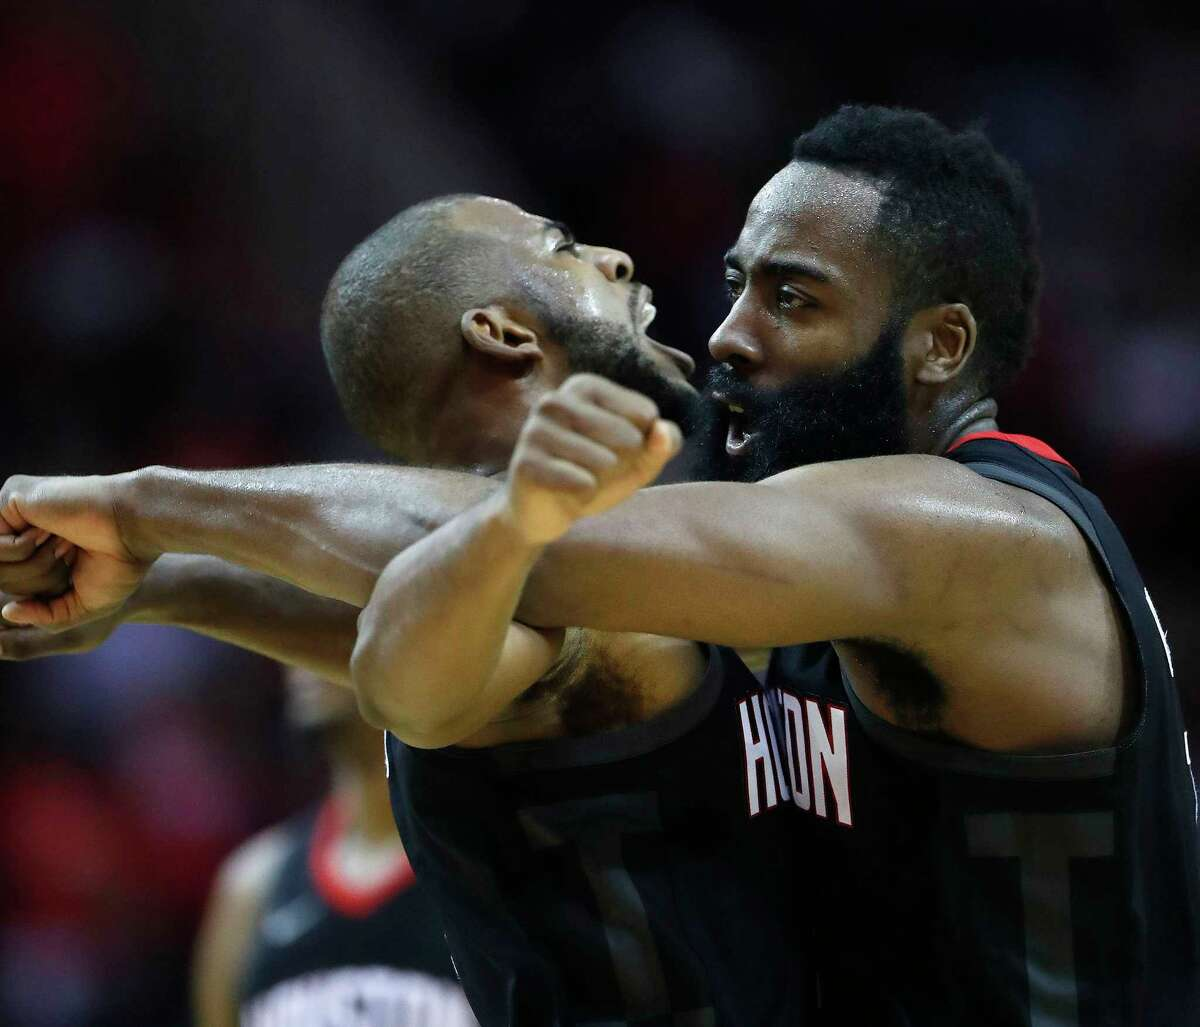 The combination of Chris Paul and James Harden has the Rockets riding high with the NBA's best record.